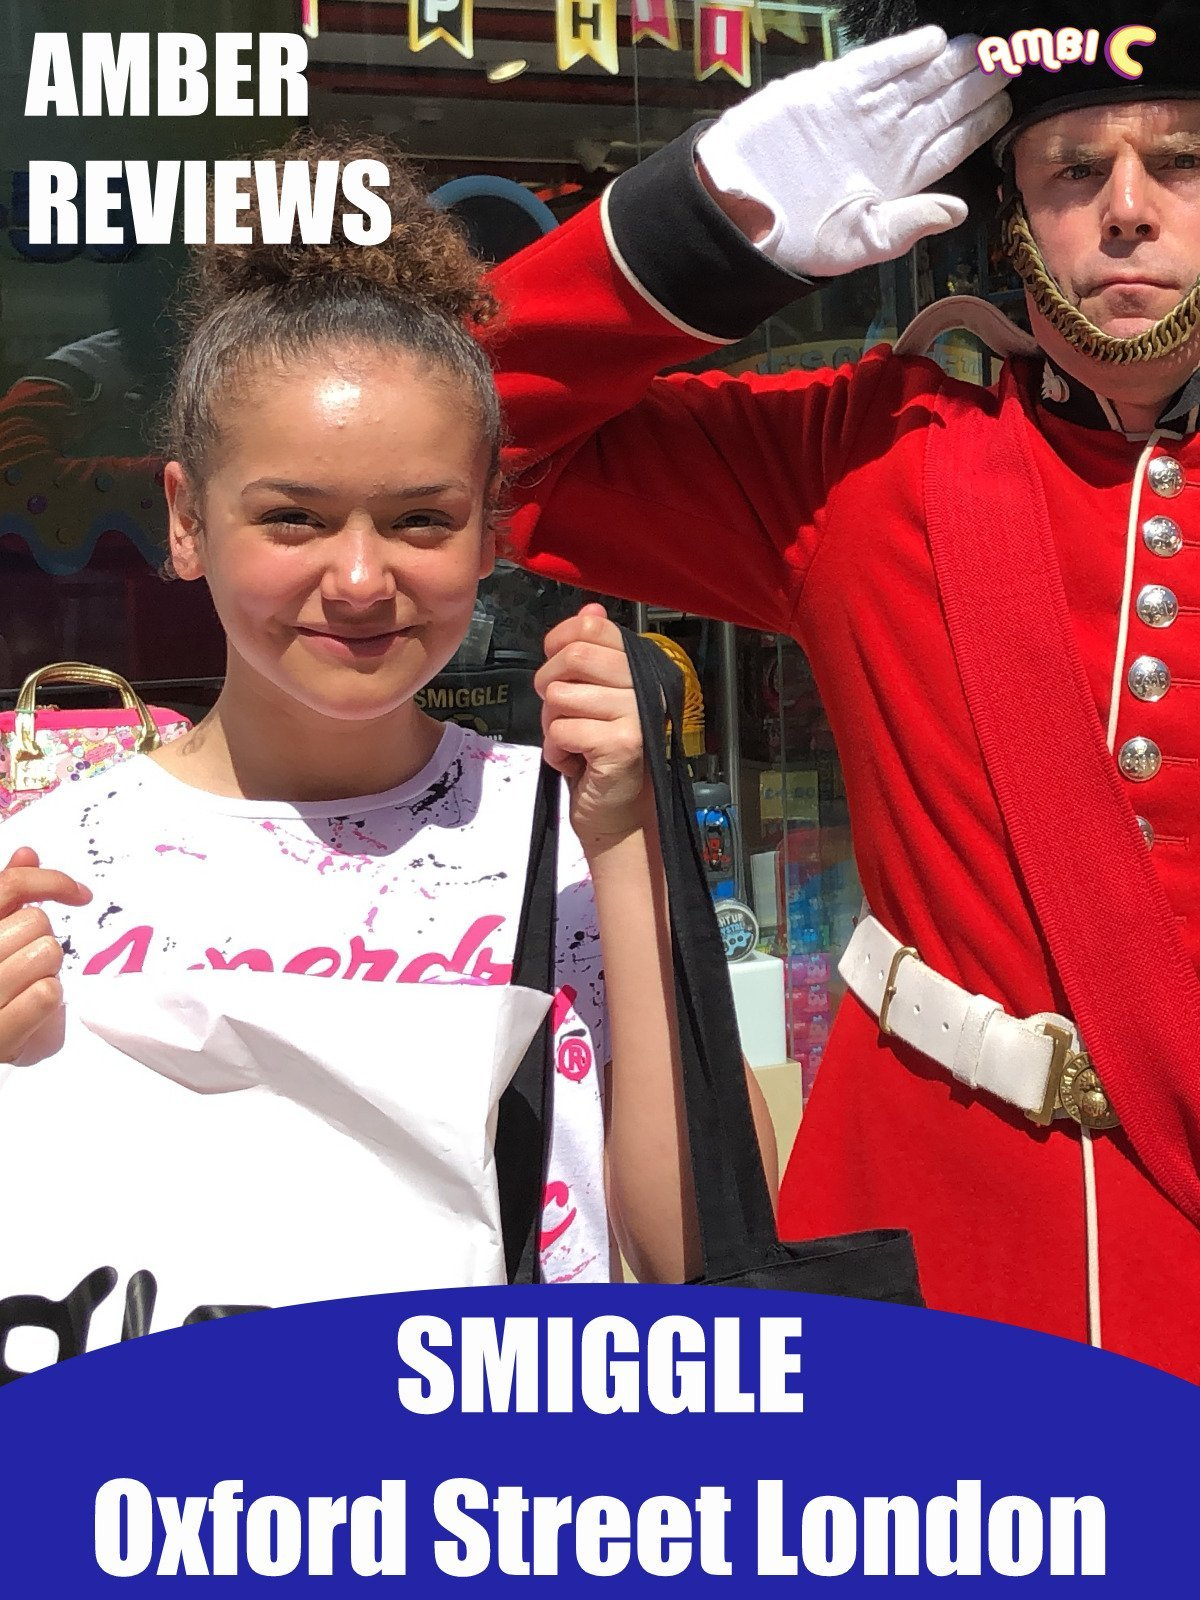 Amber Reviews Smiggle Oxford Street London